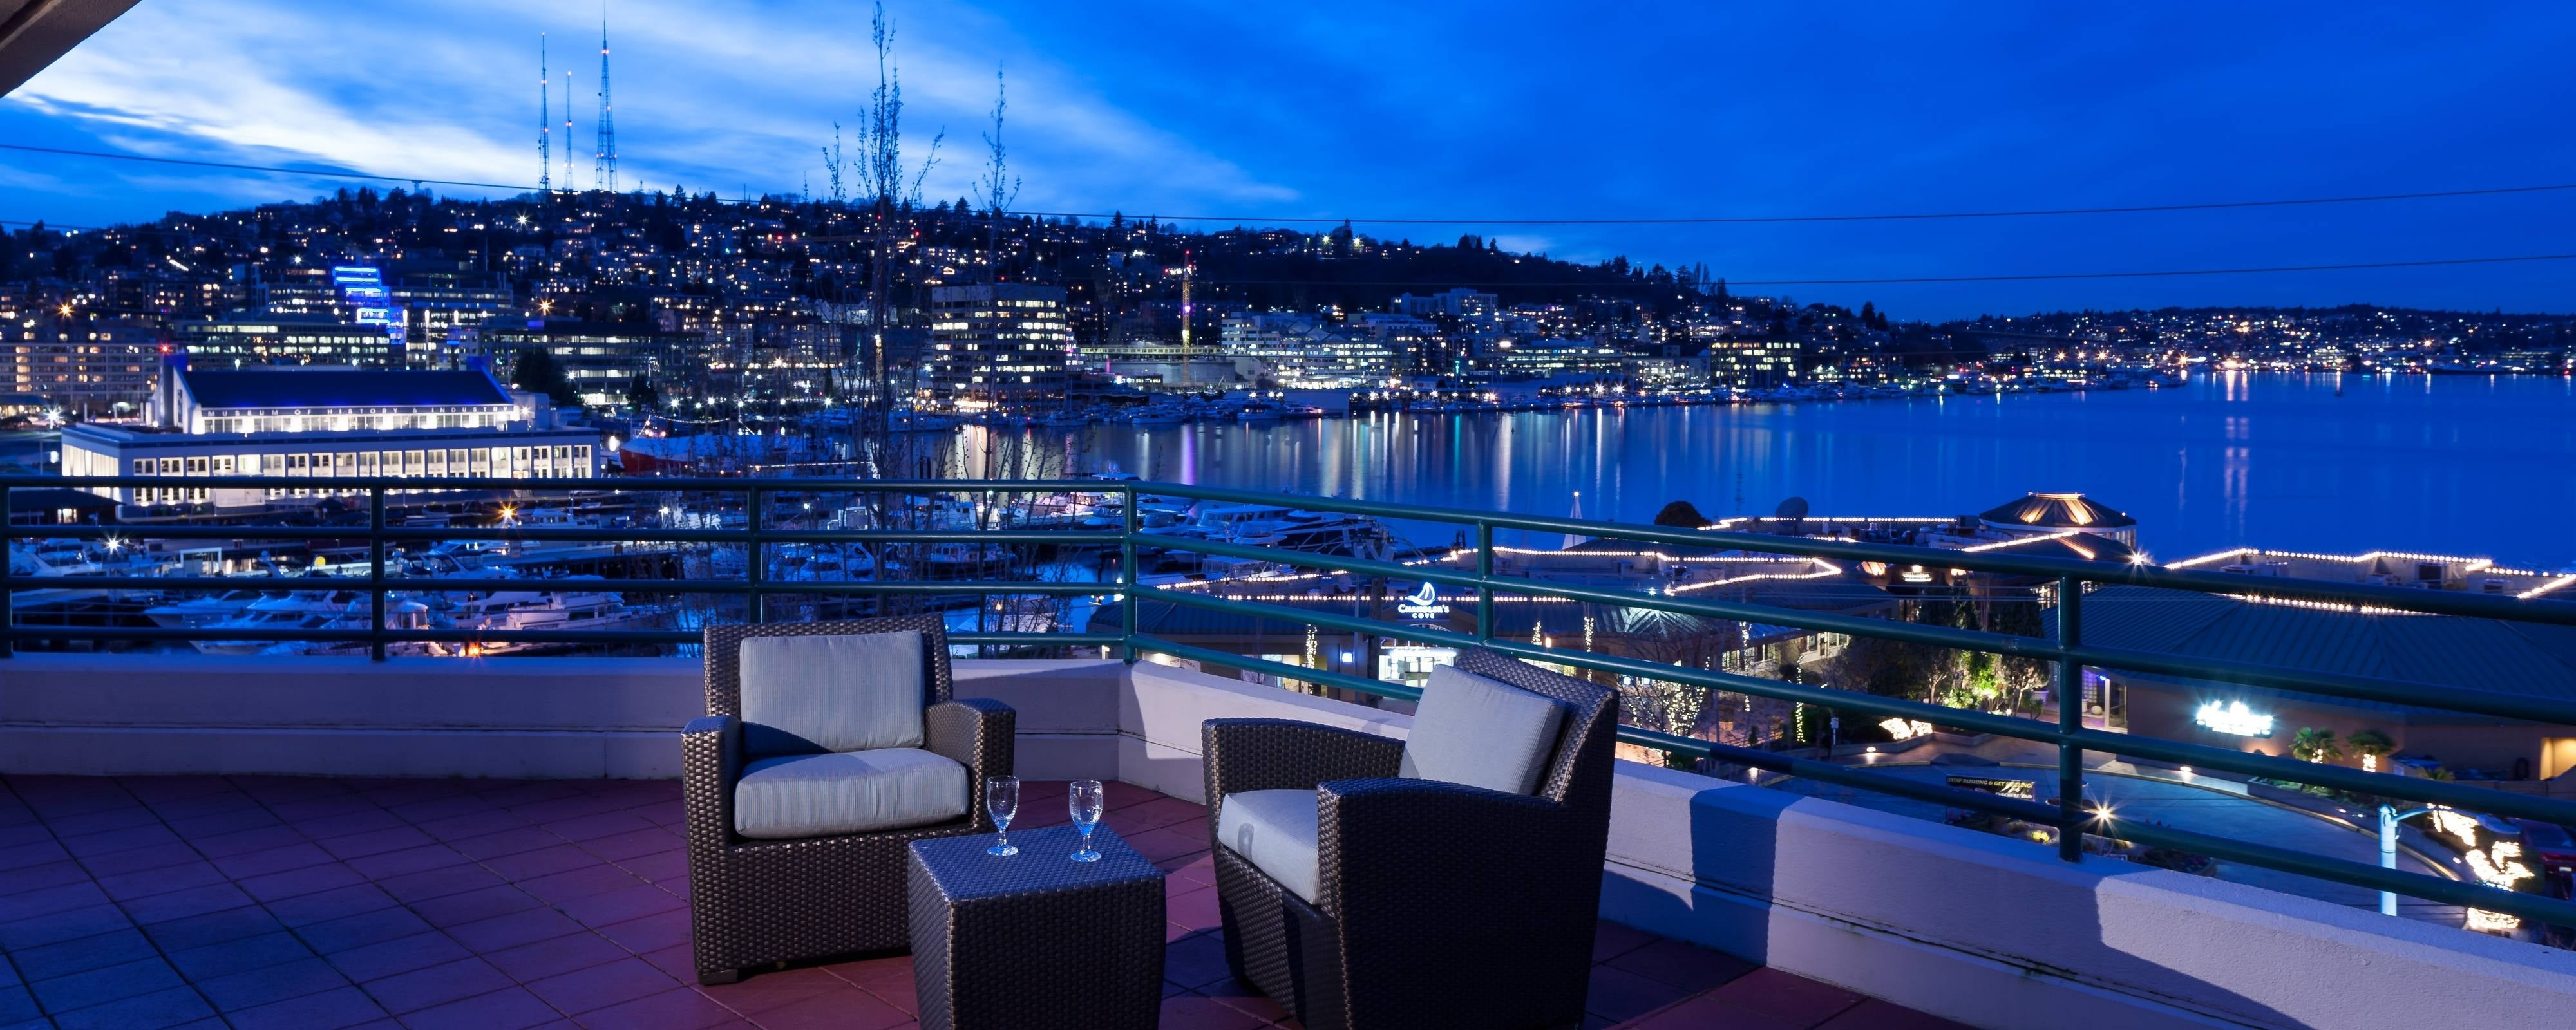 Hotel Suites In Seattle Residence Inn Downtown Lake Union